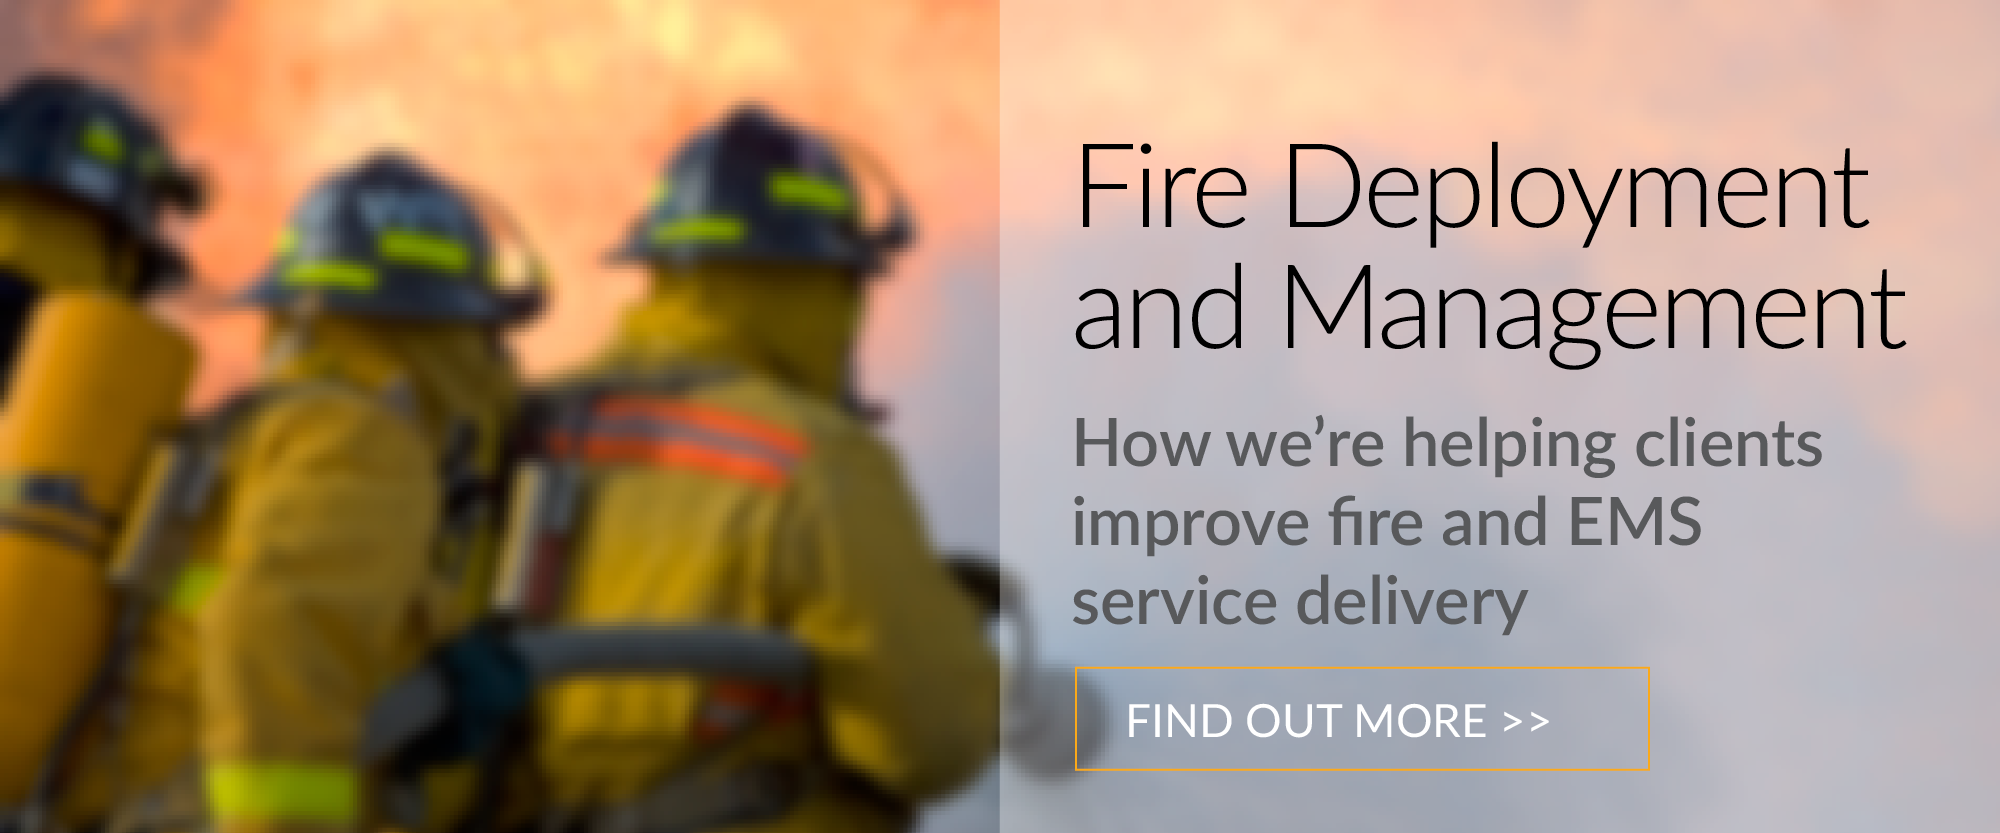 fire deployment and management